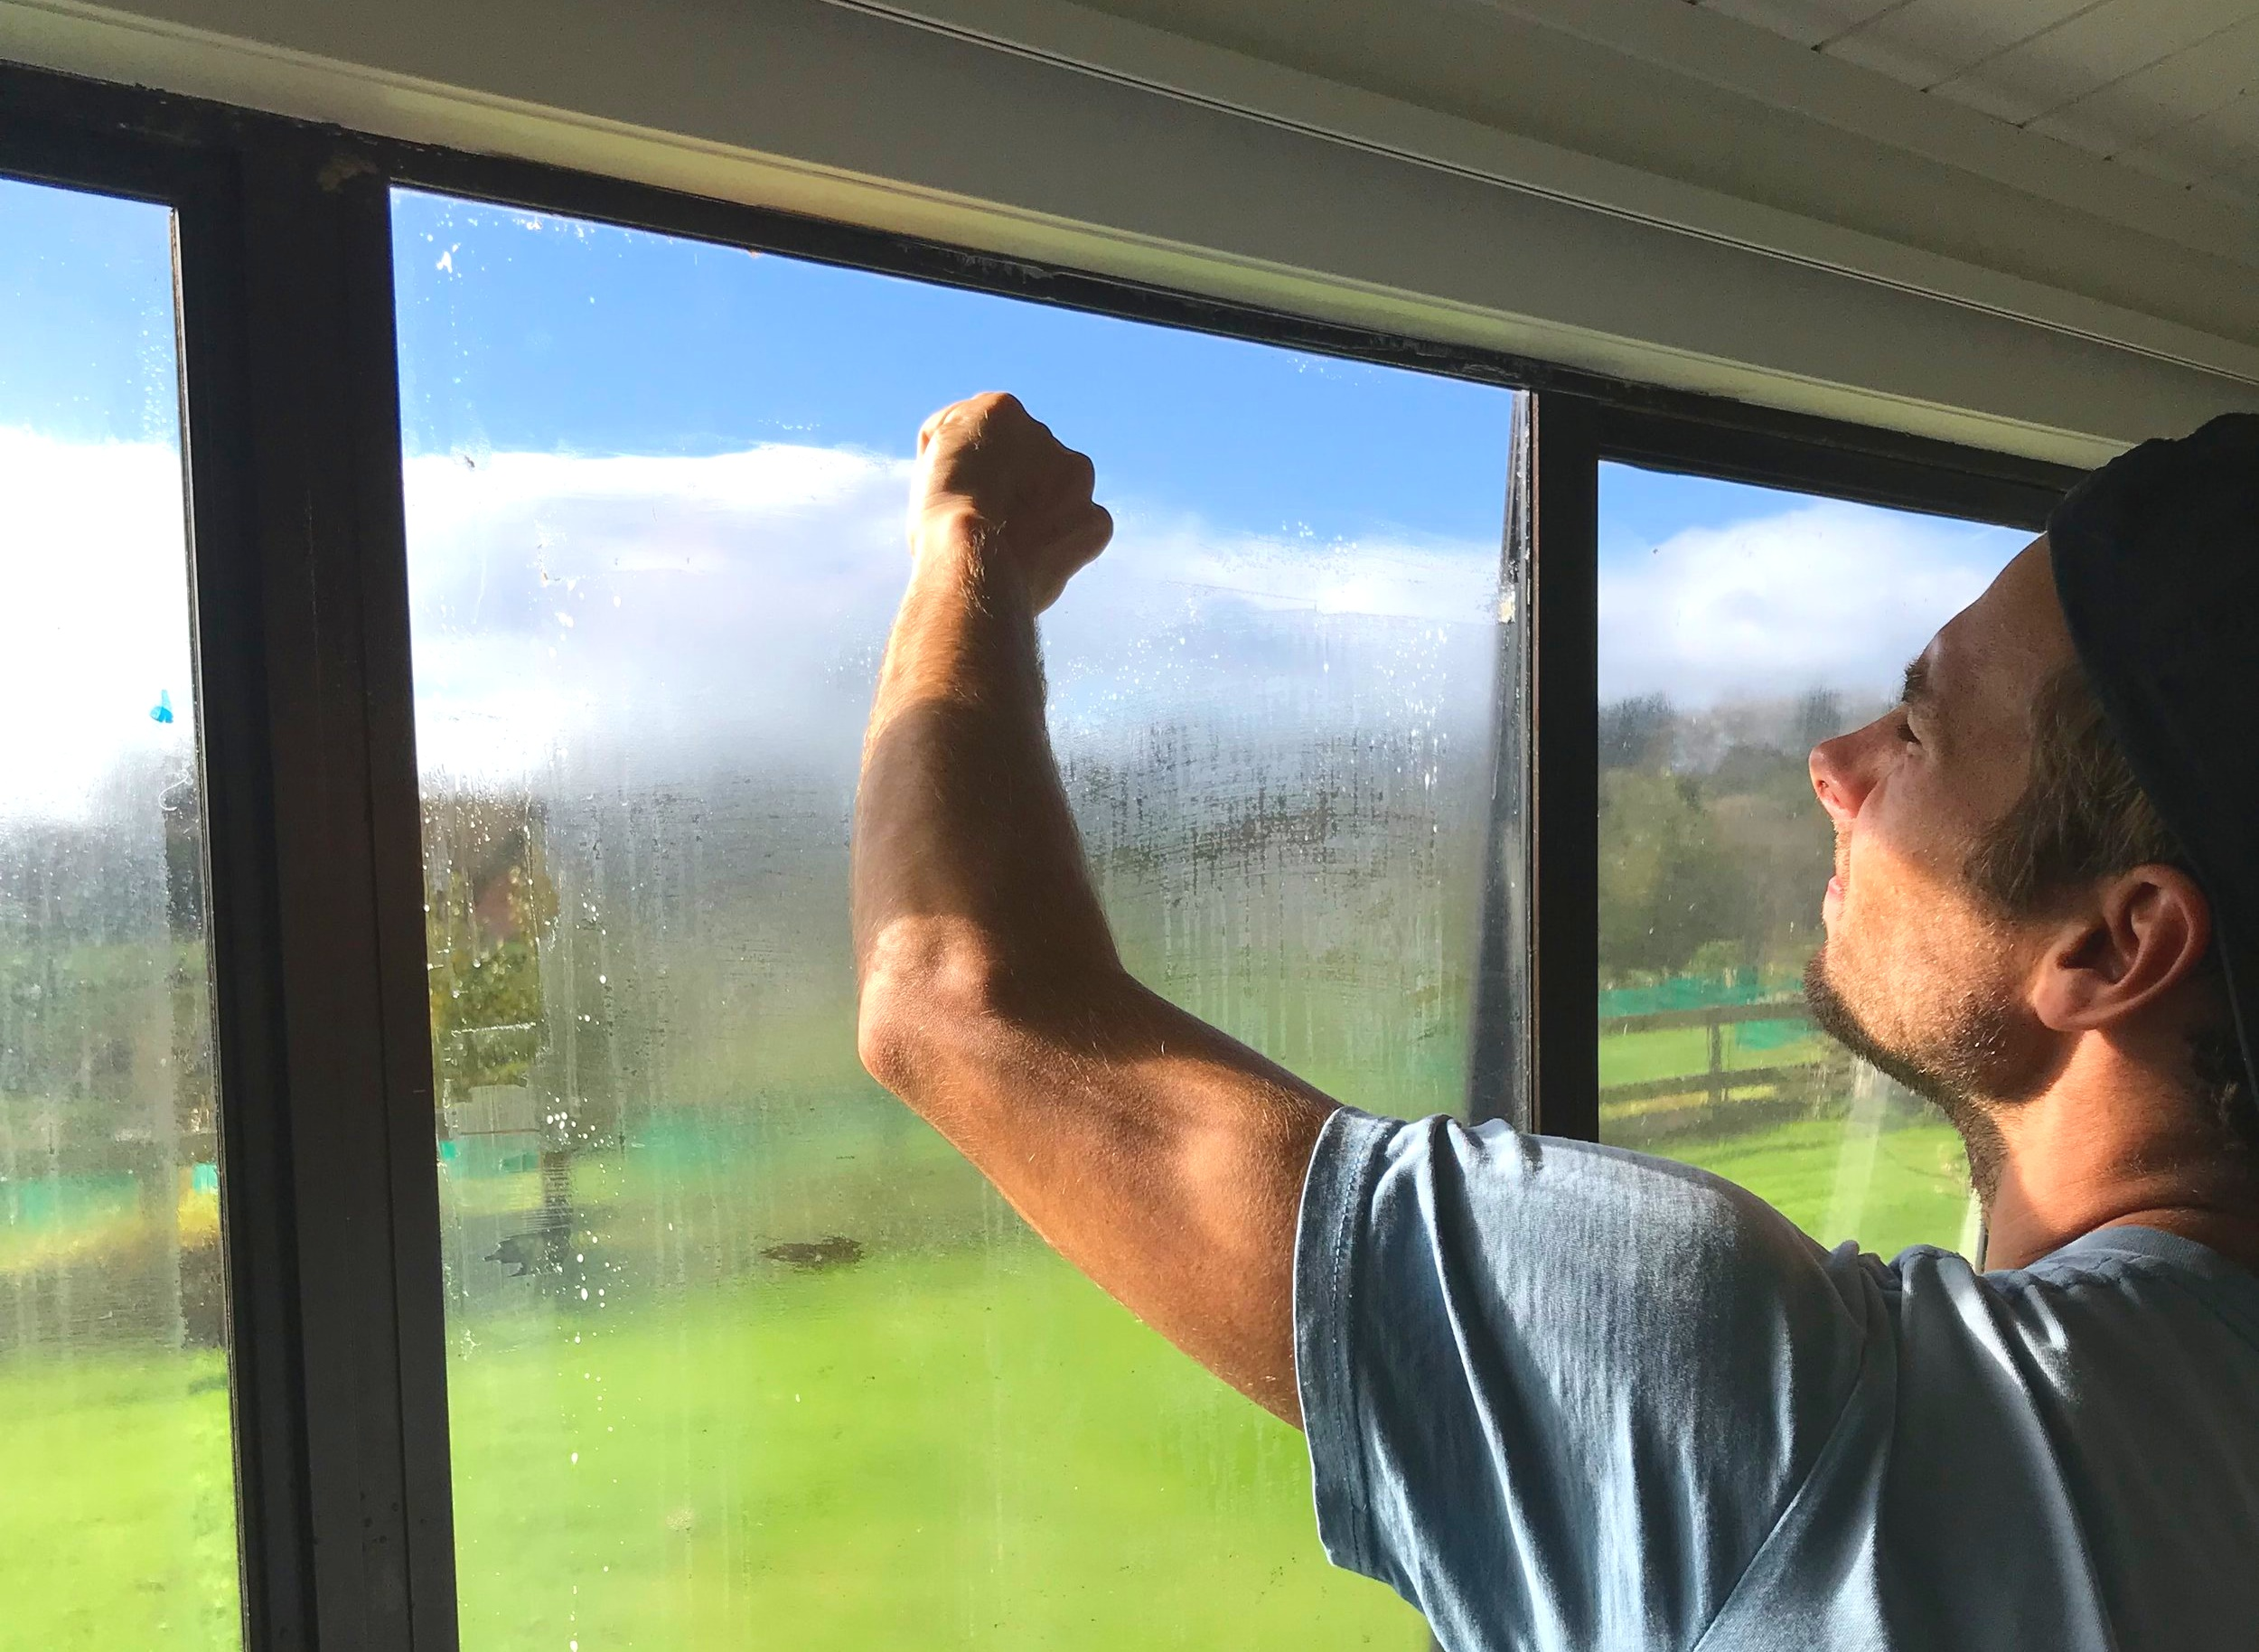 TINT REMOVAL - From time to time we come across older windows that have considerably deteriorated tint. Often this will look extremely cloudy and scratched and feels tacky to touch, it will look particularly bad in sunlit areas of your house.The only successful option at this stage is the complete removal of the damaged tint that will leave your windows looking brand new. Over the past few years we have developed the most efficient tools, products and techniques to remove tint fully from windows.